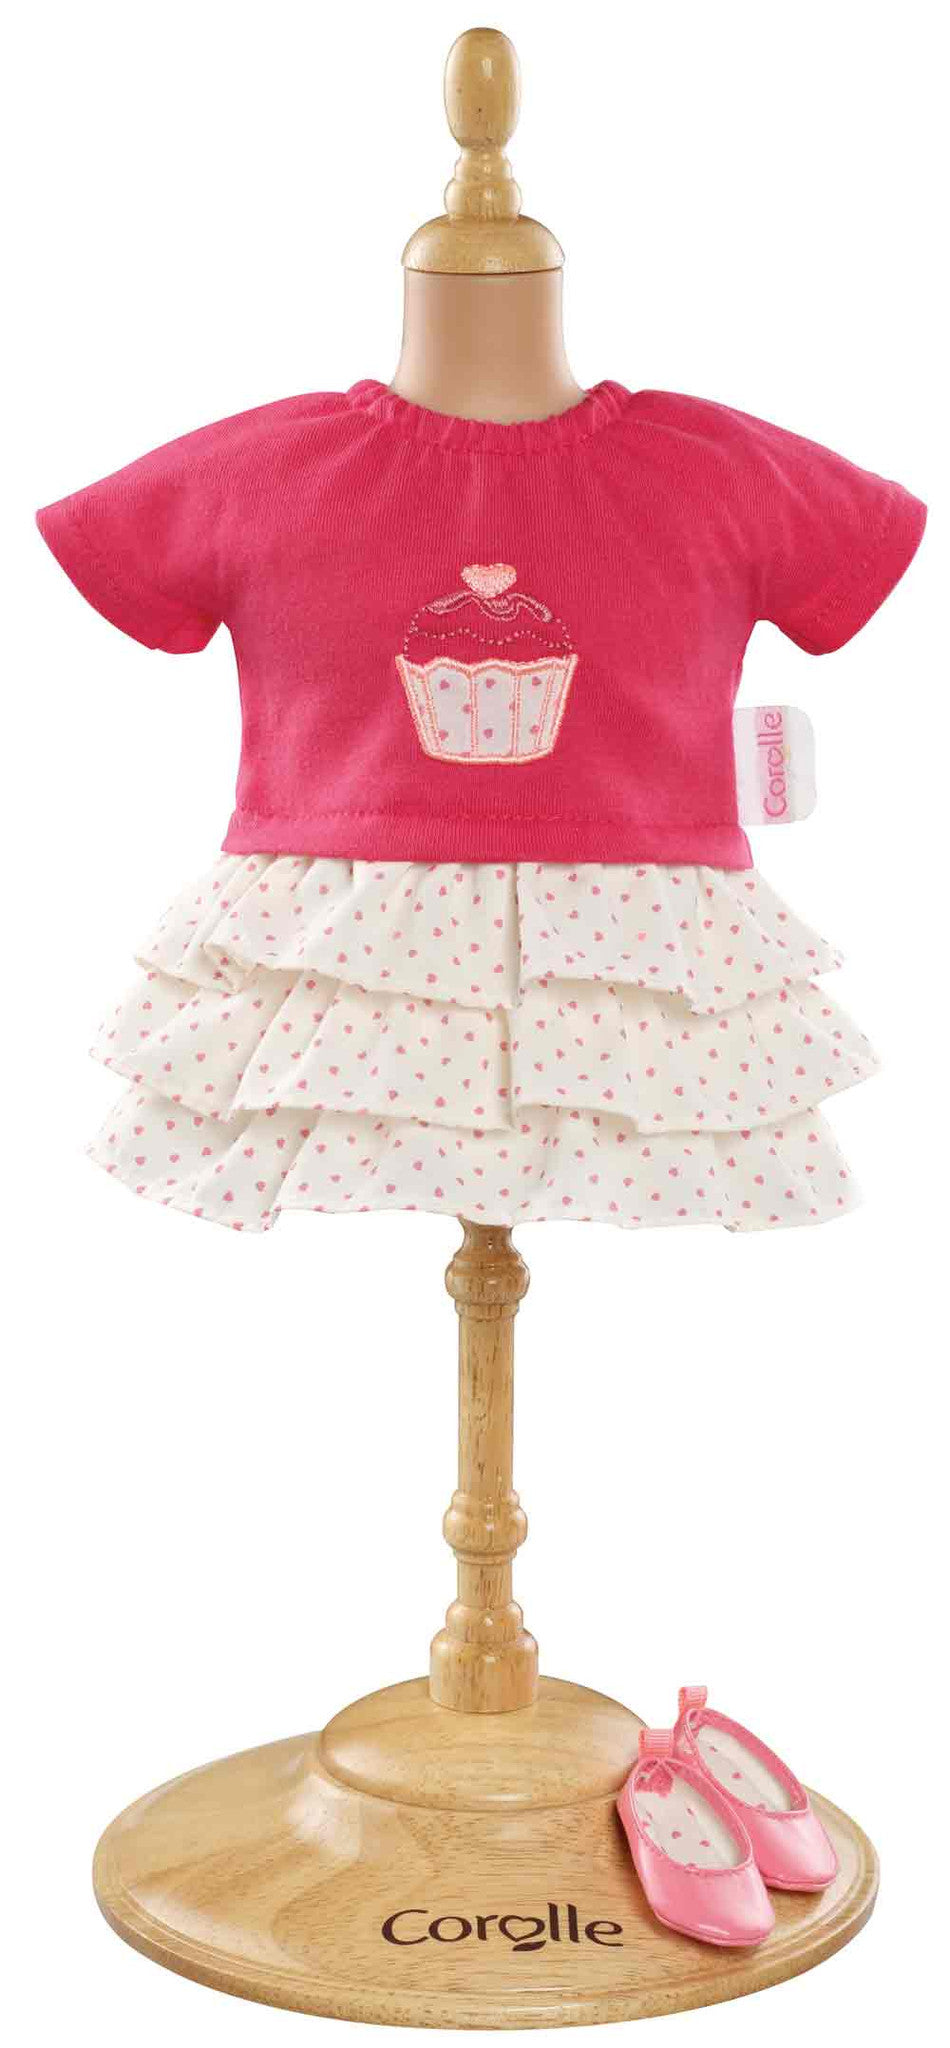 COROLLE - Mademoiselle/Ma Corolle - Clothing - Ruffle Dress & Shoes 36cm